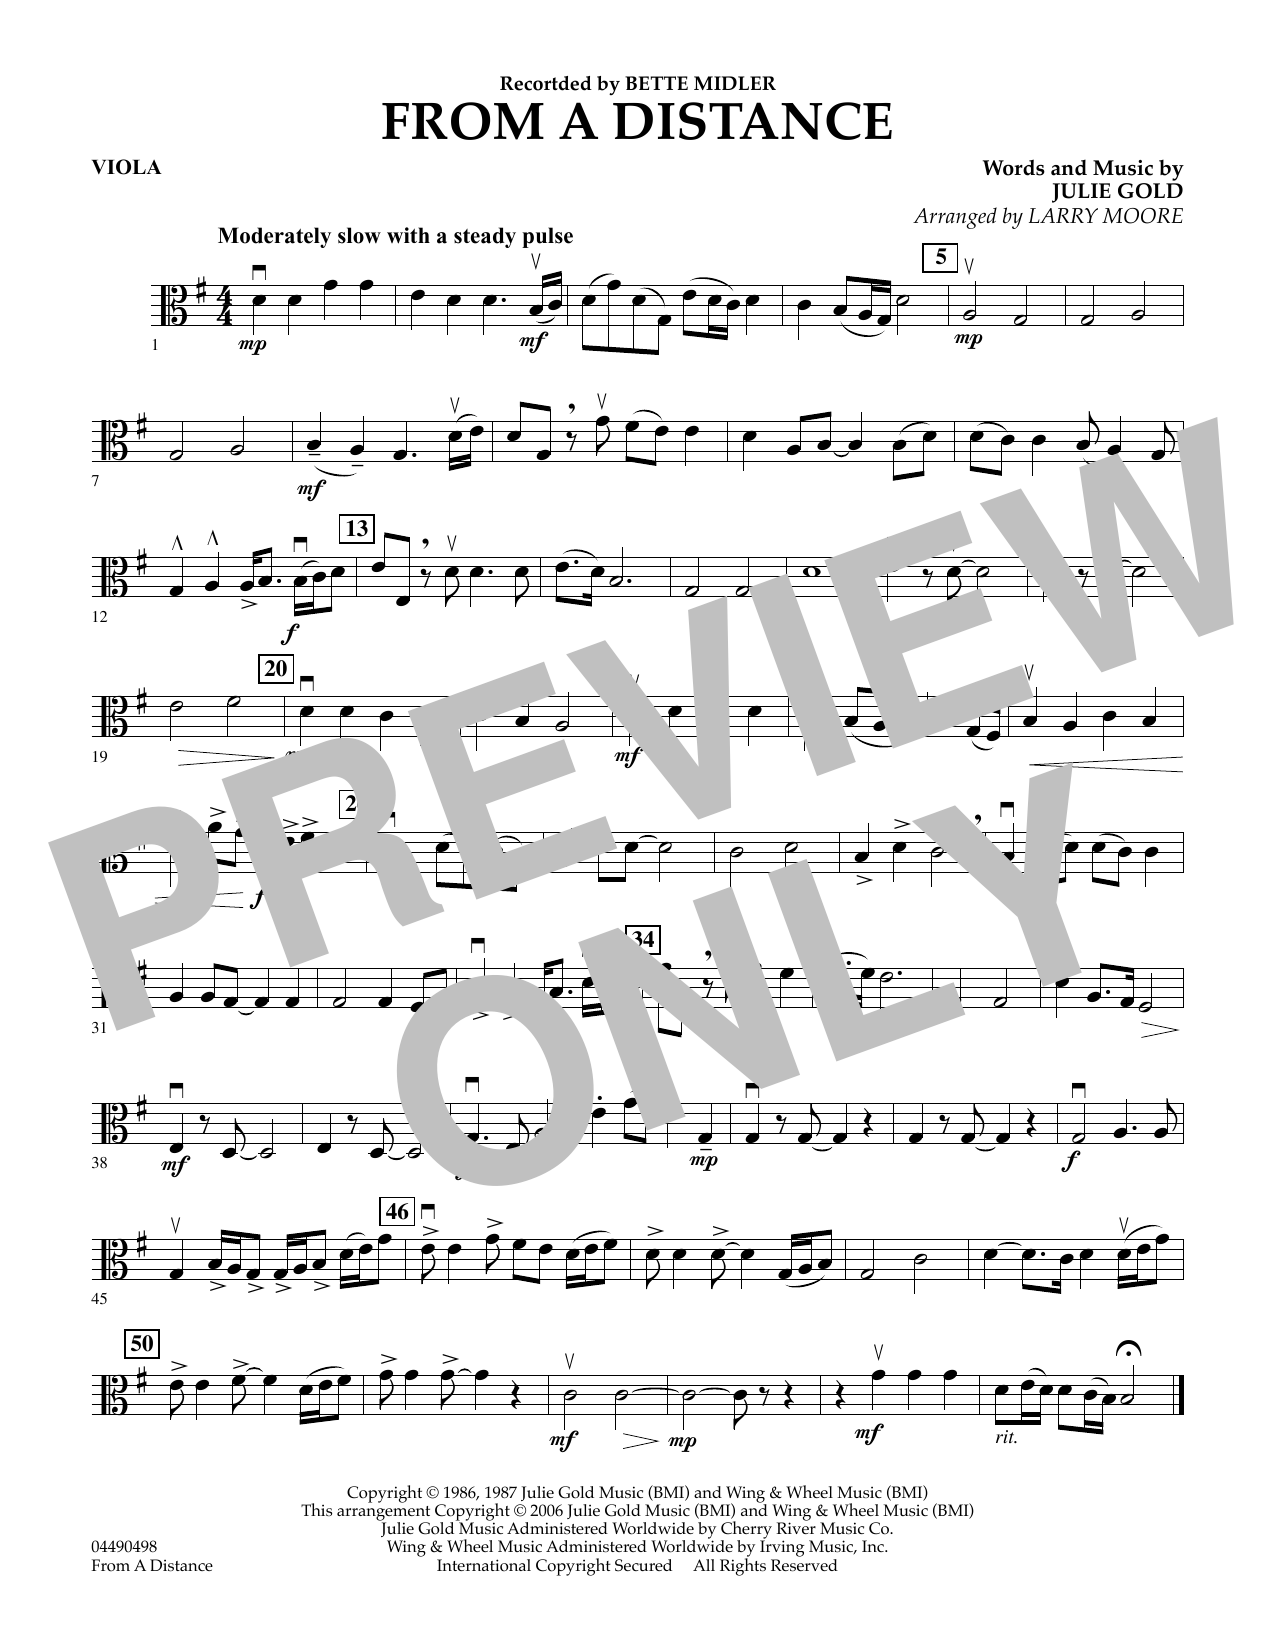 Download Julie Gold 'From a Distance (arr. Larry Moore) - Viola' Digital Sheet Music Notes & Chords and start playing in minutes